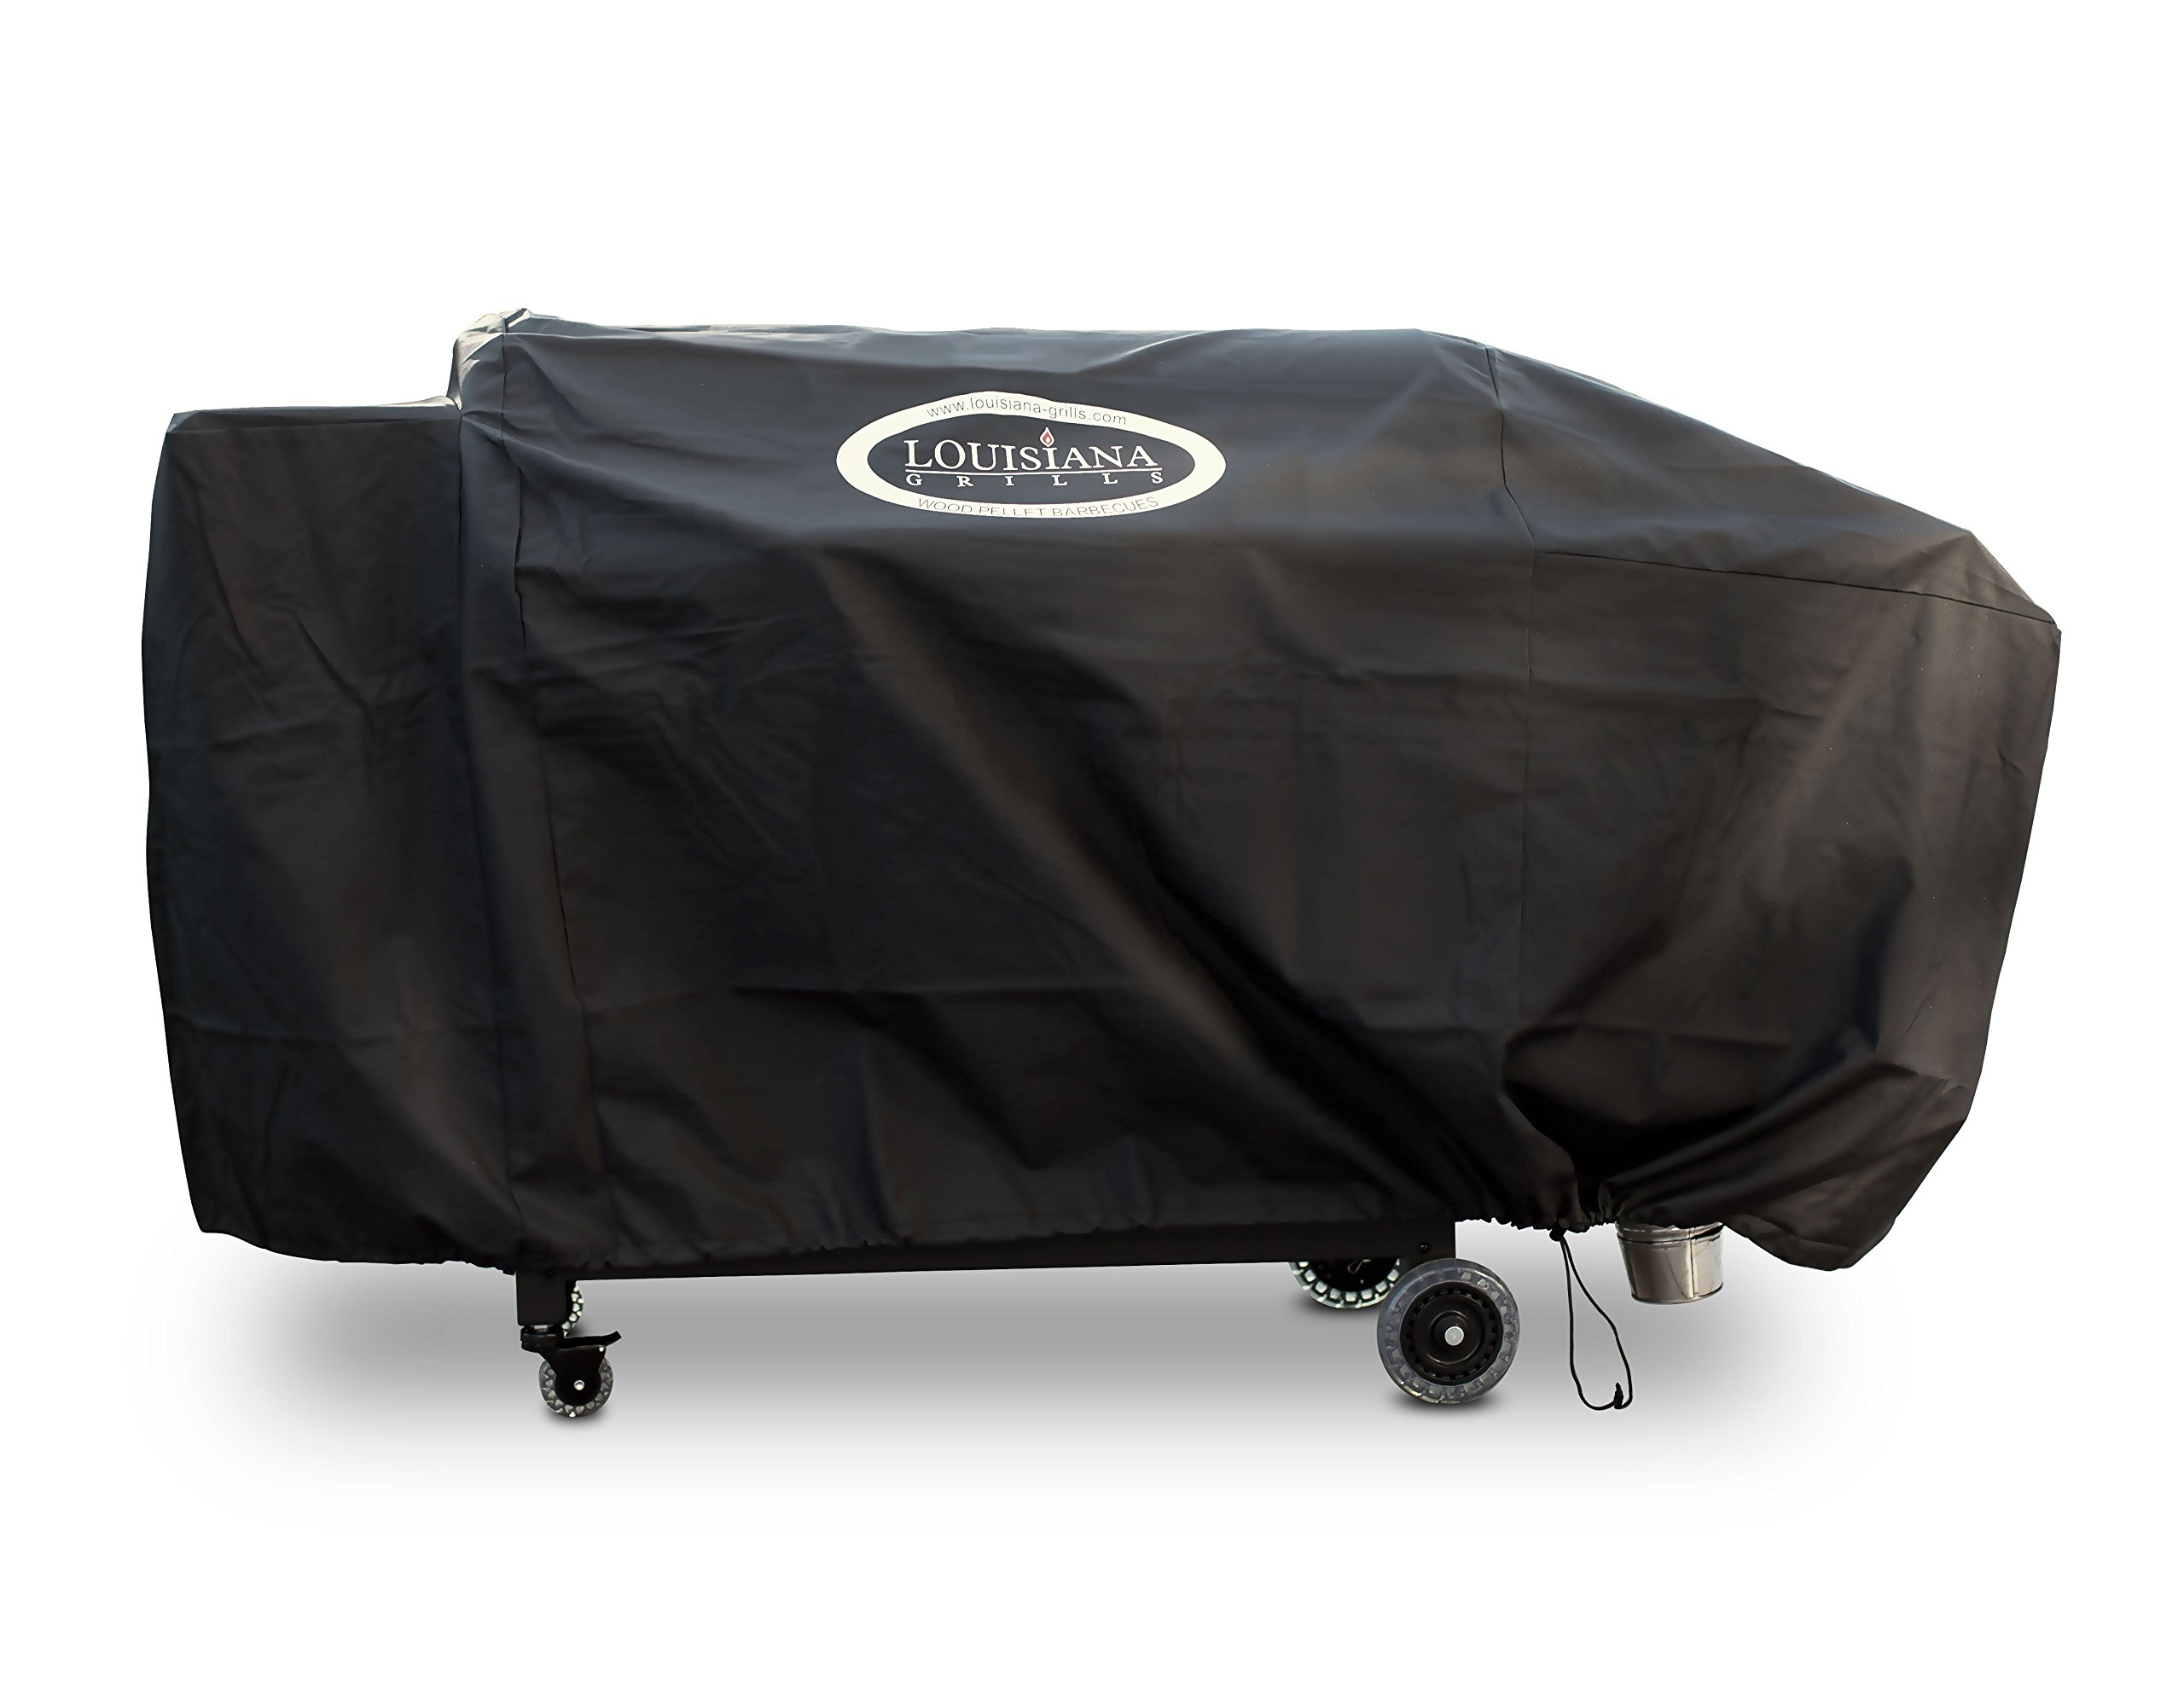 Louisiana Grills BBQ Cover for CS680/LG1100 Pellet Grills and Cold Smoke Cabinet